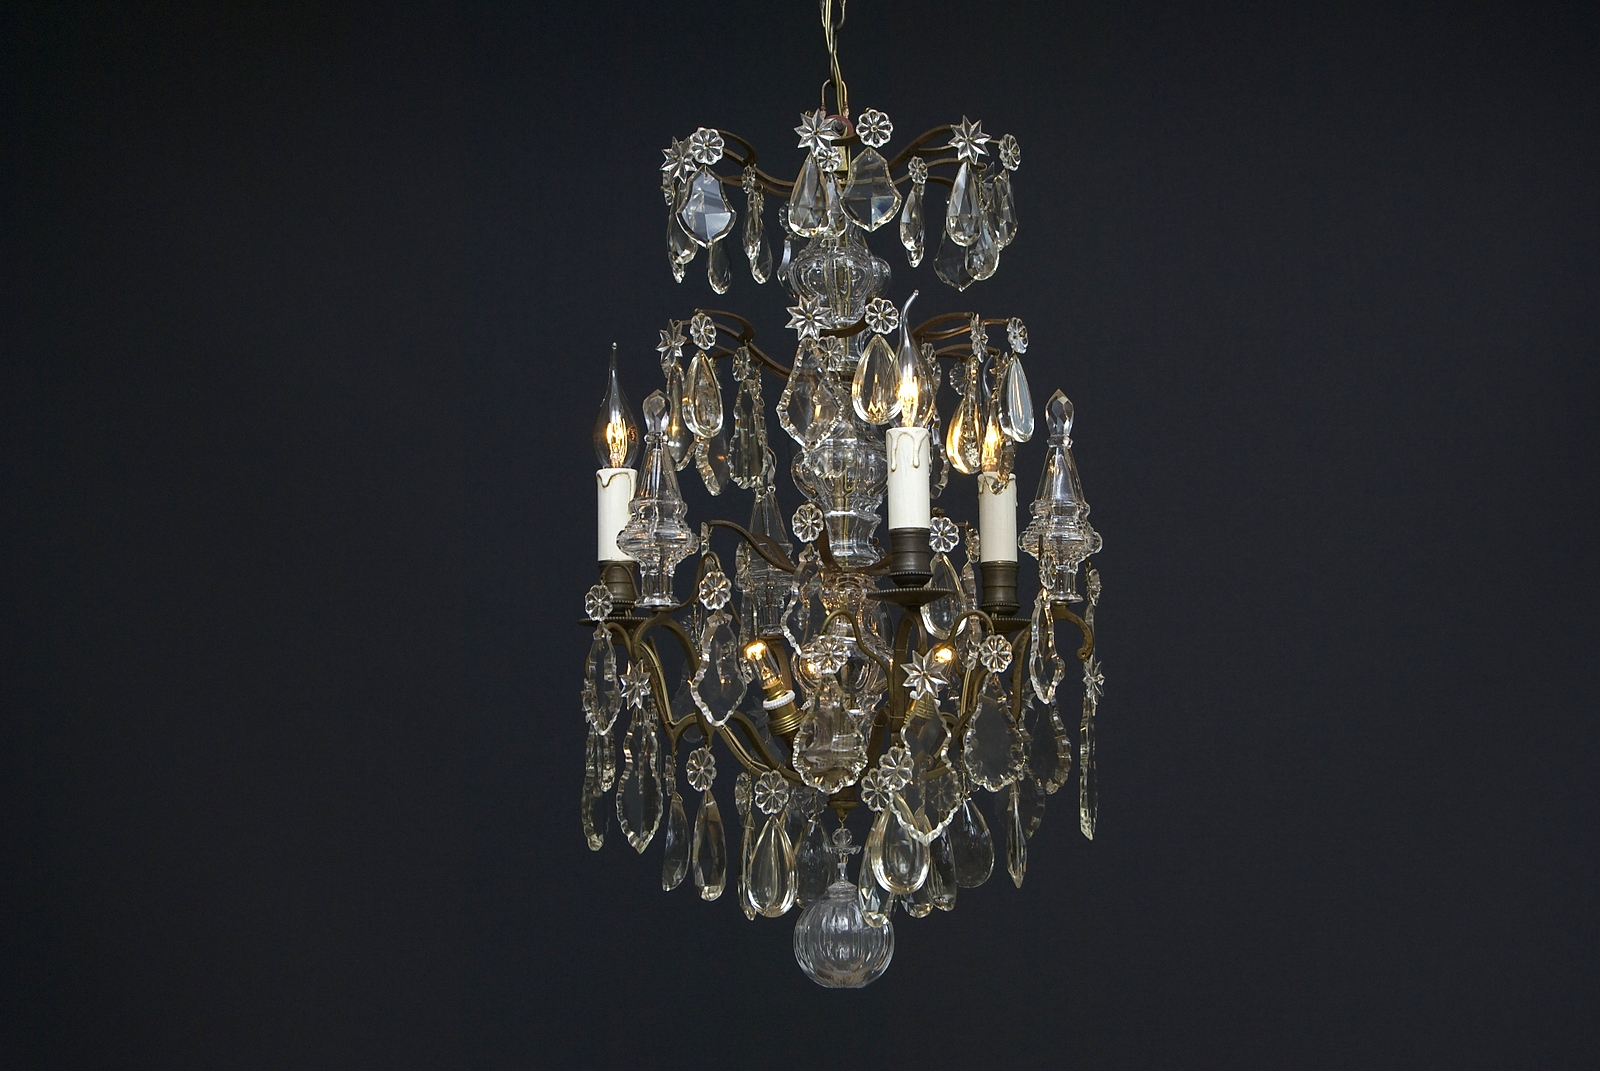 Late 19th century French crystal chandelier with 6 light